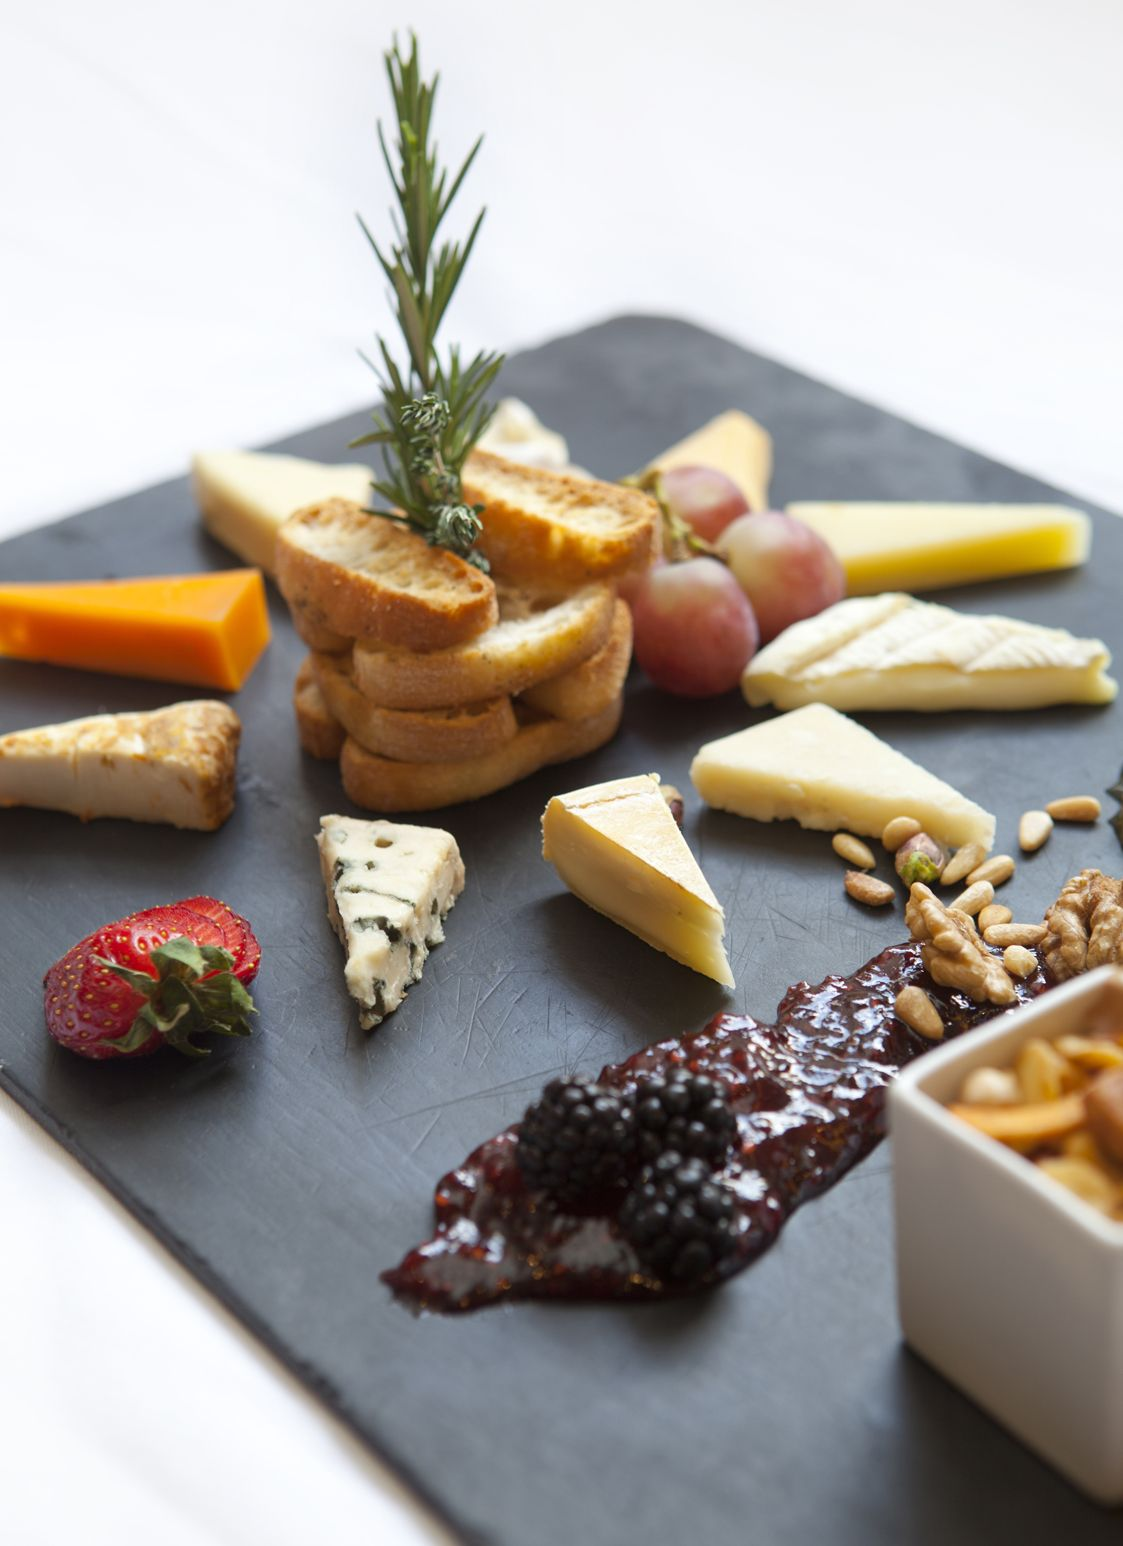 Recetas Cocina Creativa Tapas Cheese Me Barcelona Wine And Cheese Tapas Bar Cocina Creativa